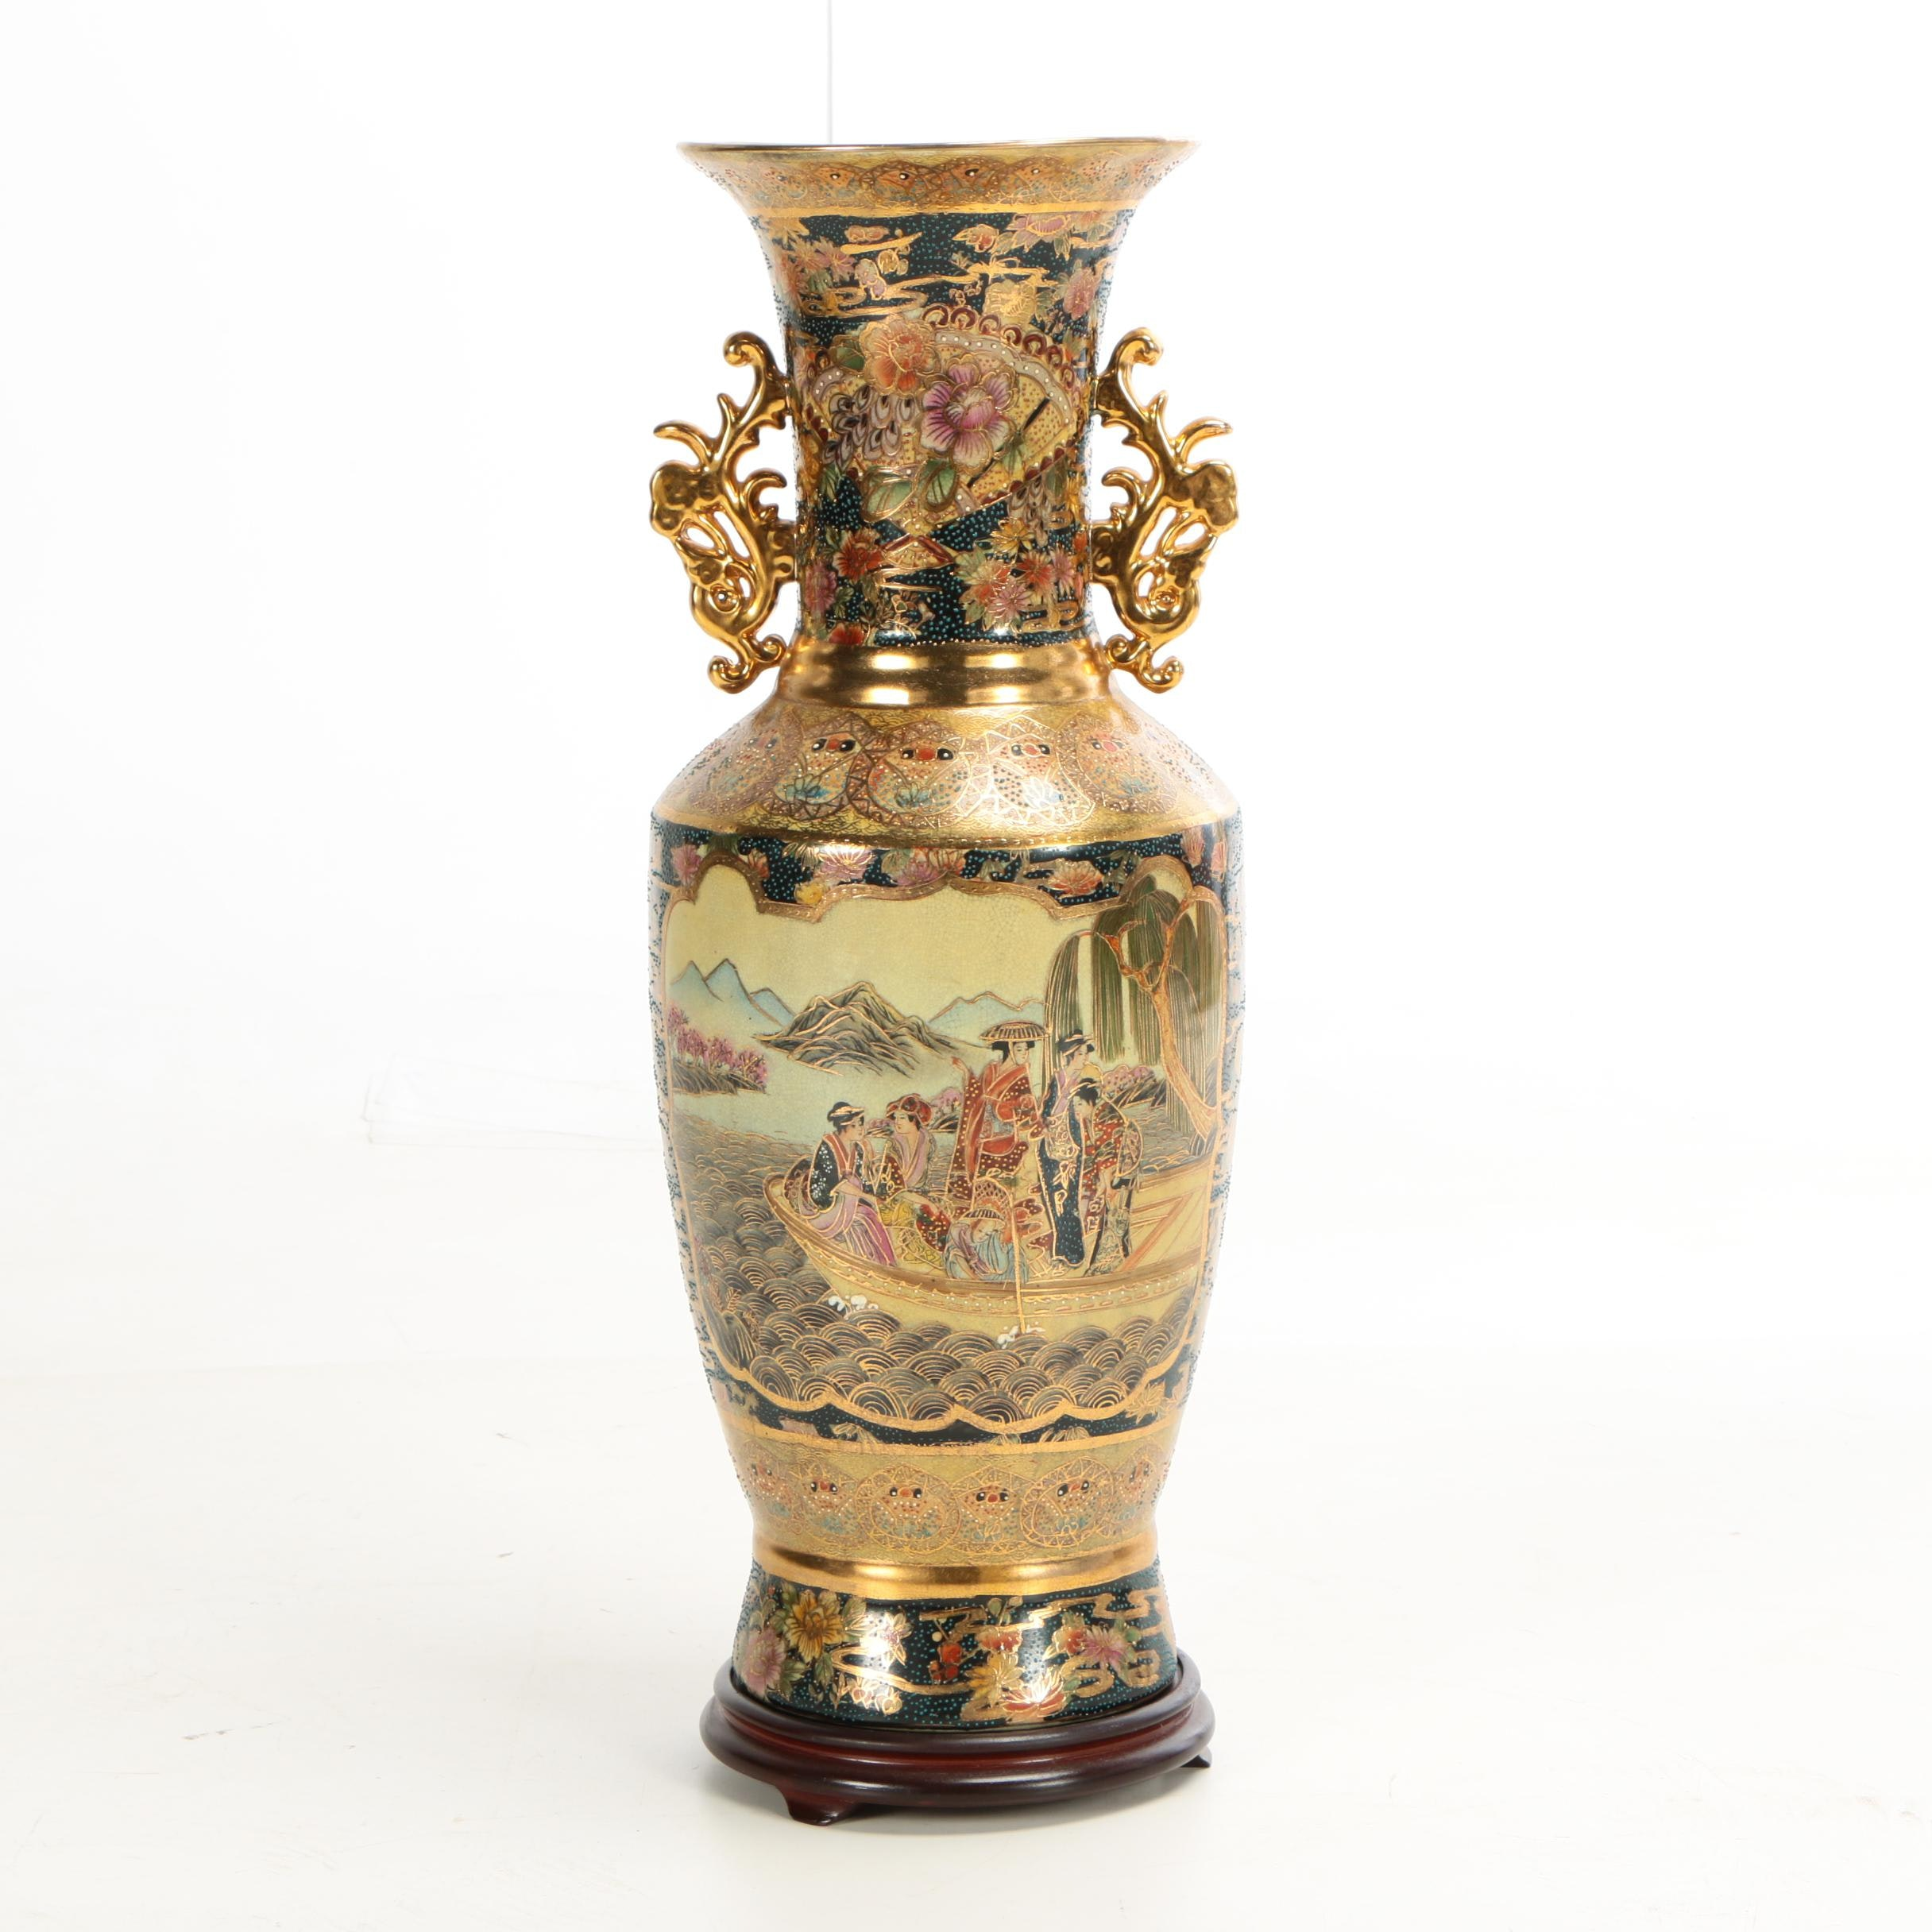 Chinese Satsuma Style Ceramic Floor Vase with Wooden Stand, Late 20th Century